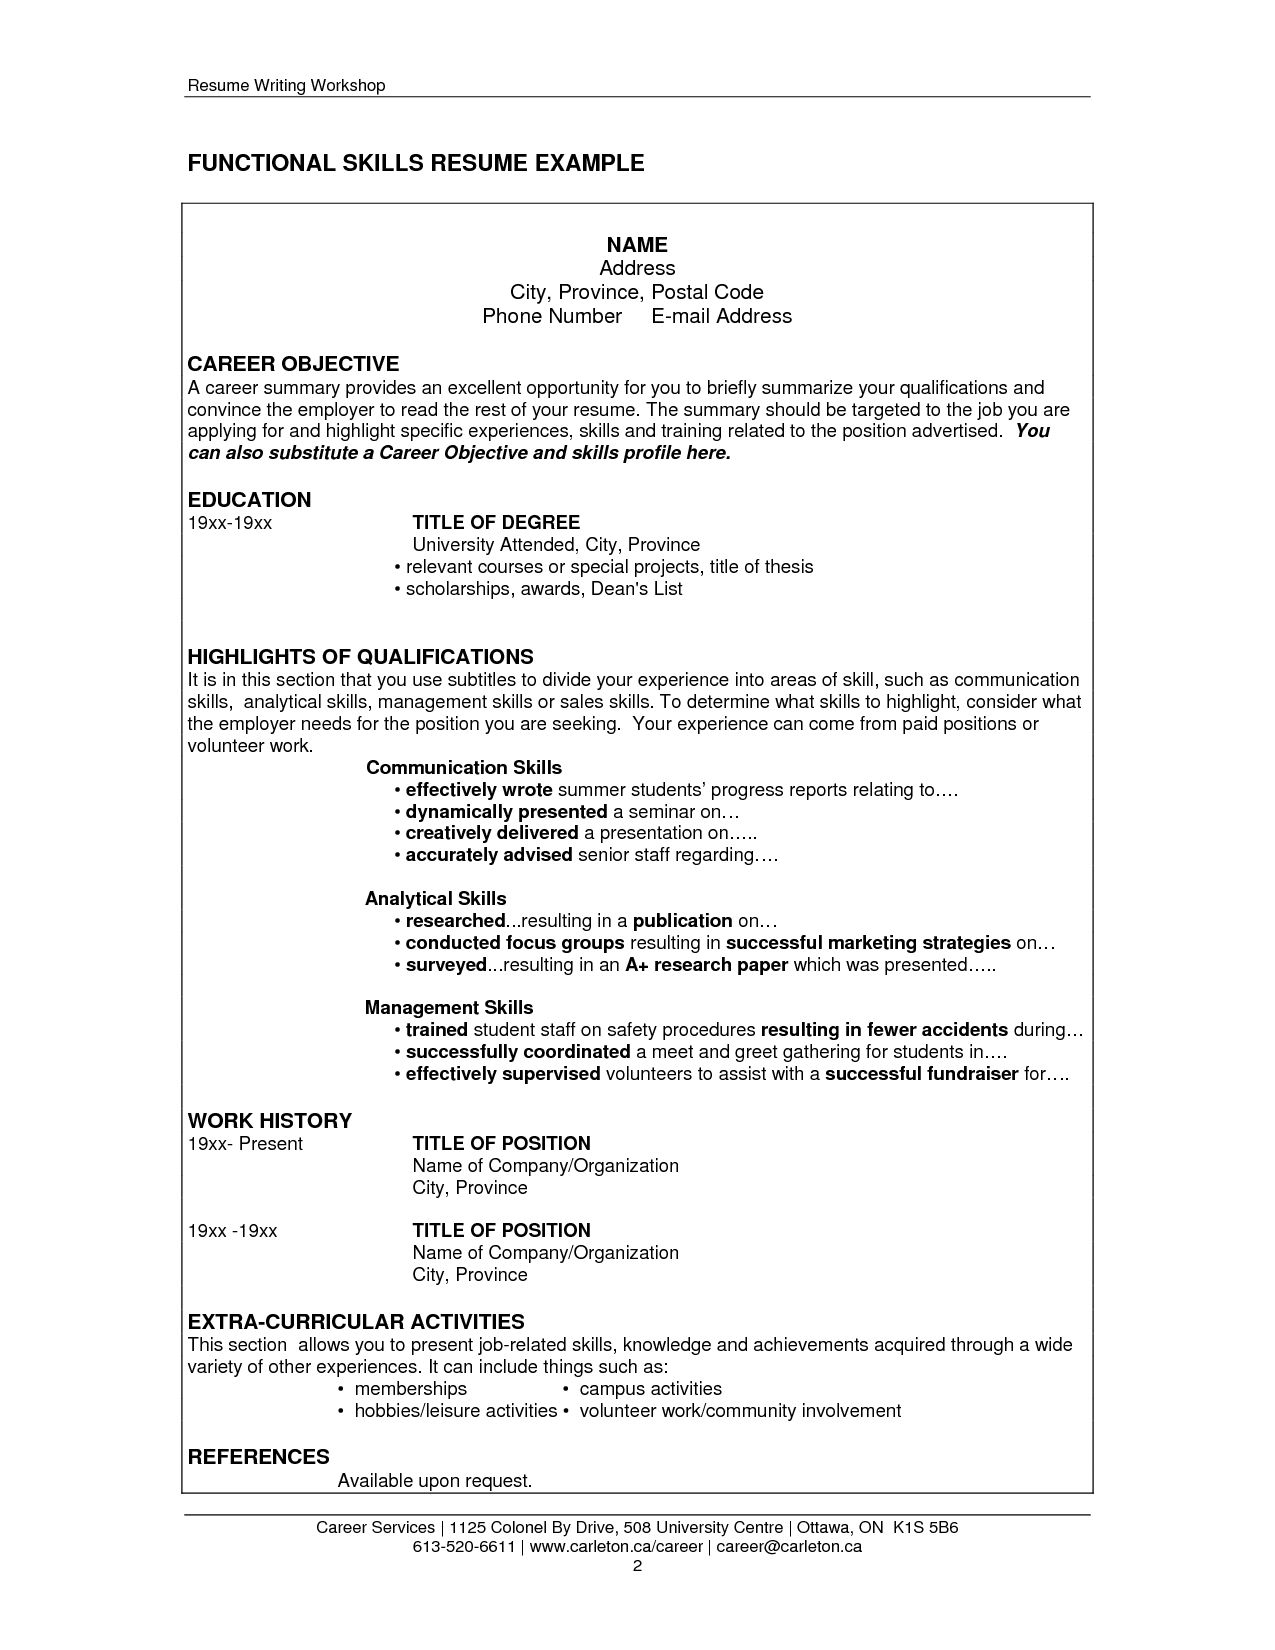 resume examples skills section 57a660016 new resume skills and qual